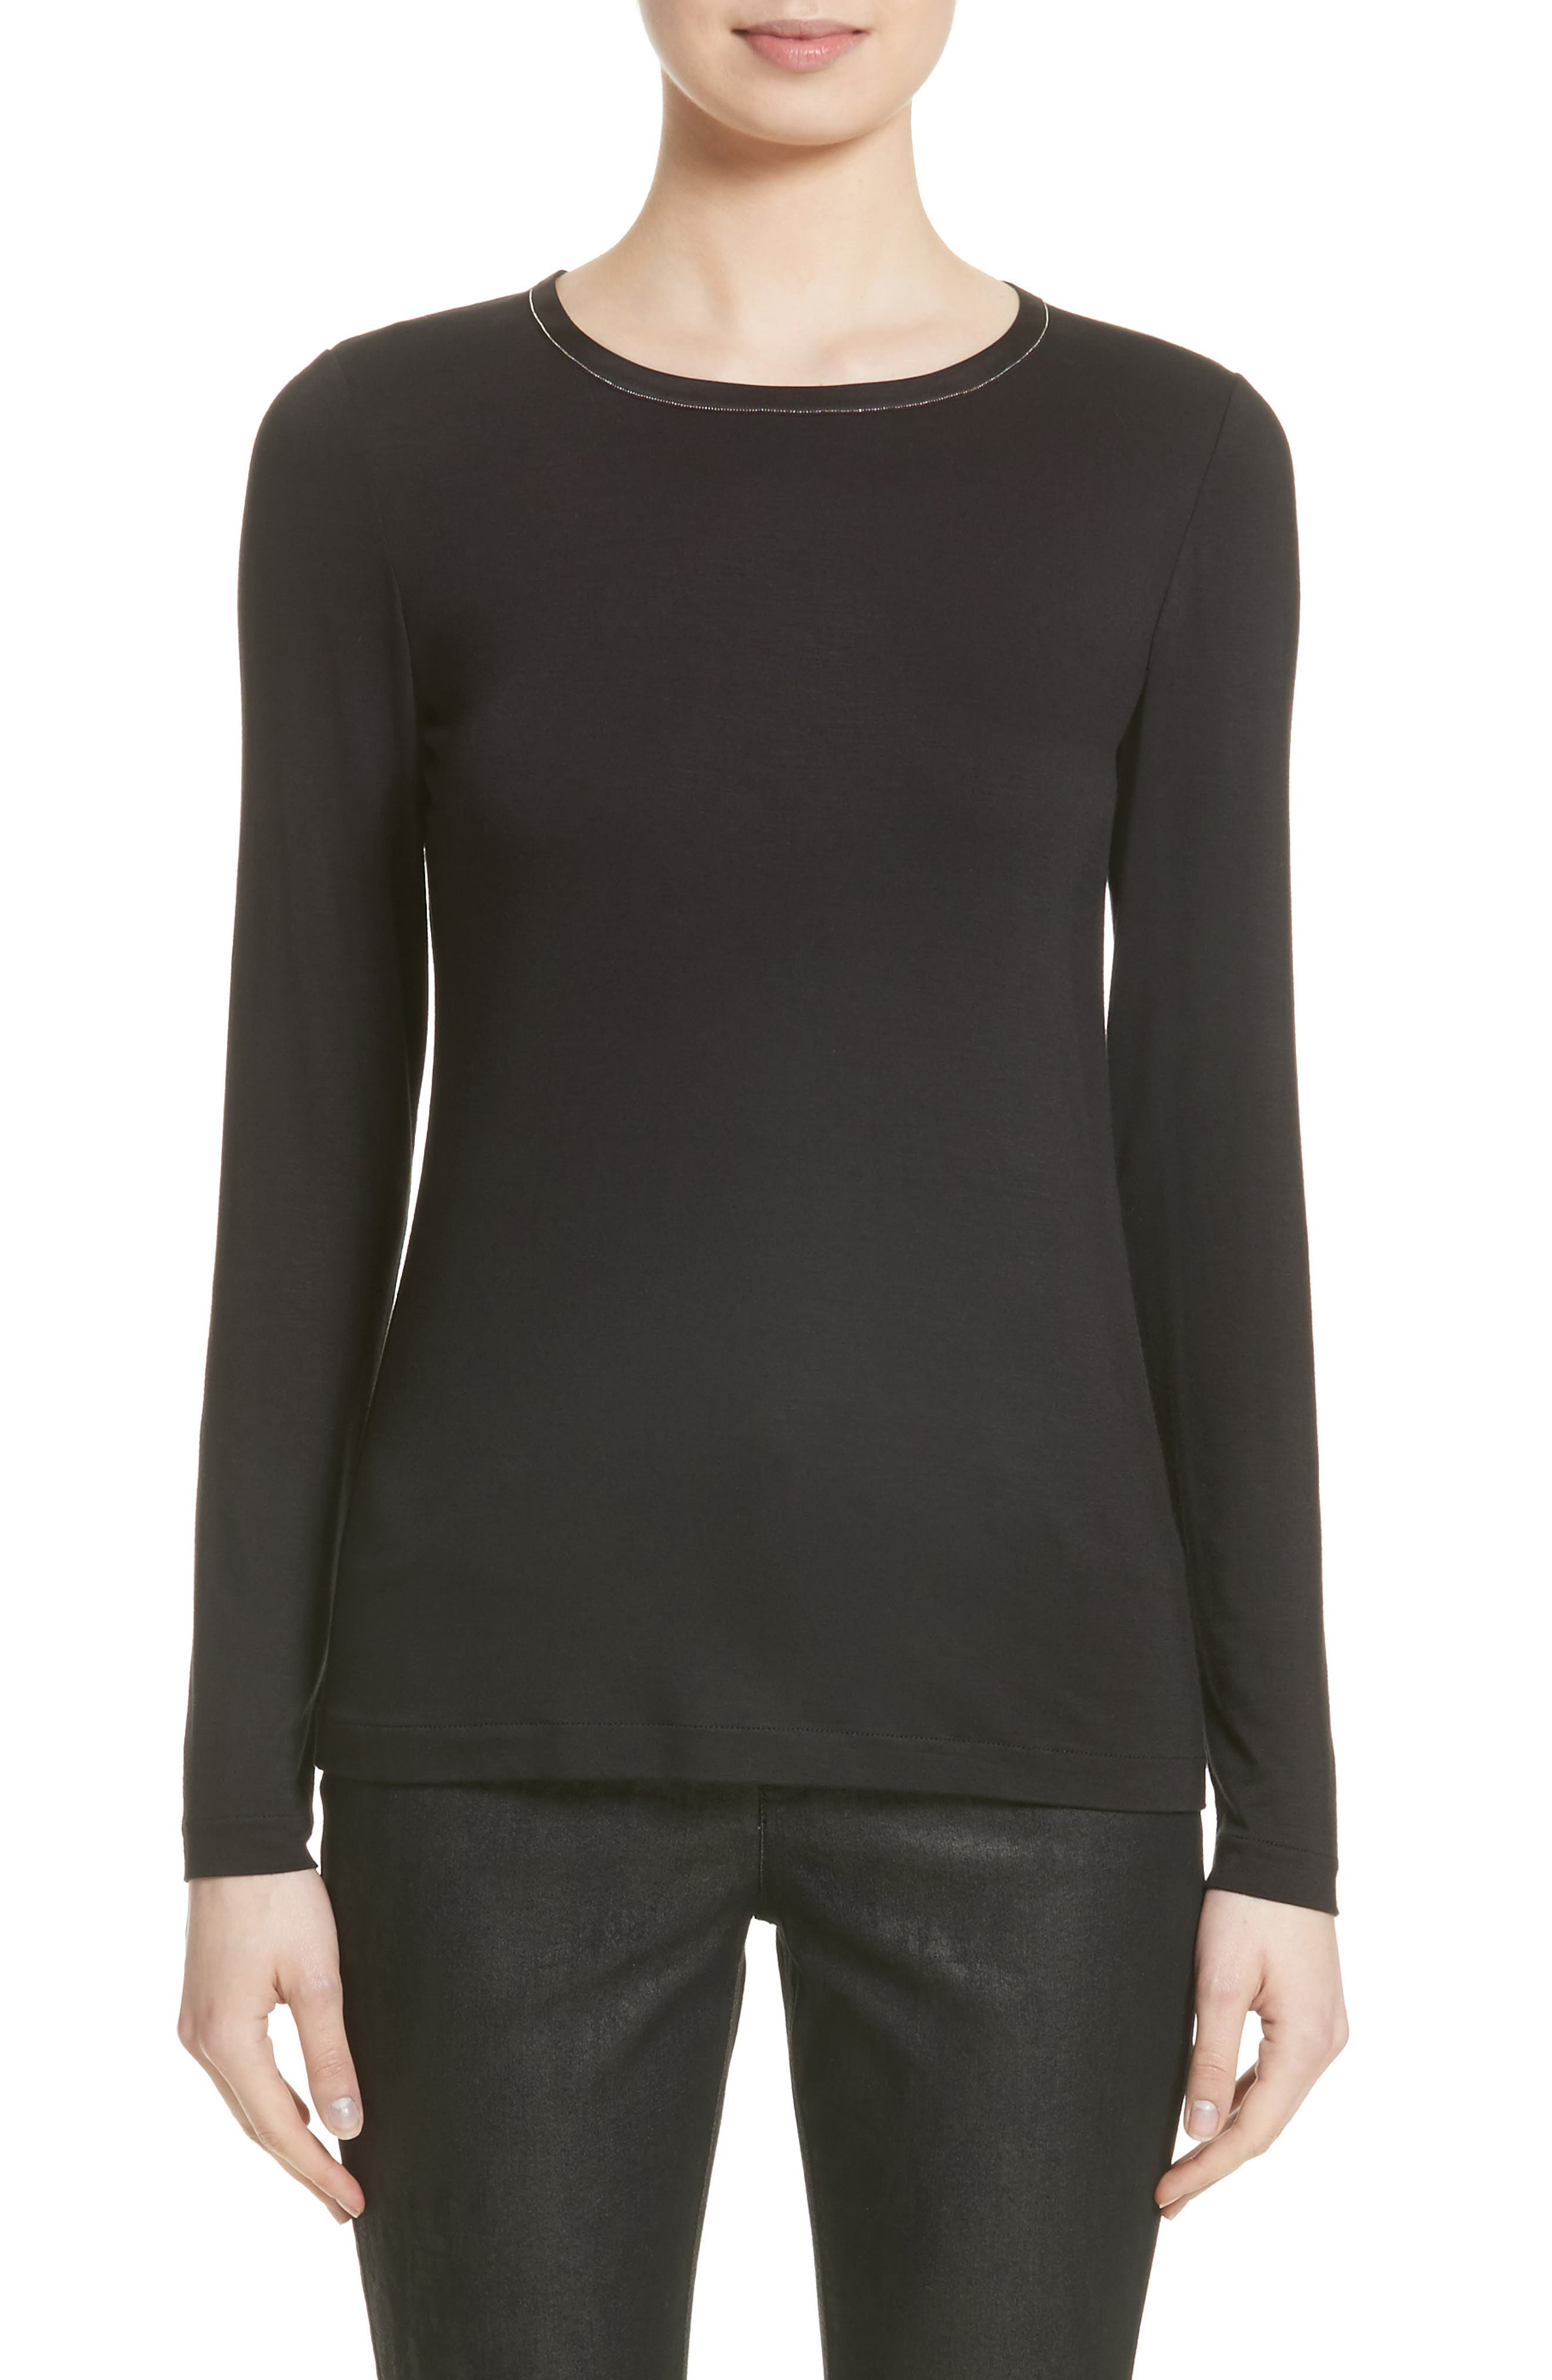 Lafayette 148 New York Embellished Neck Long Sleeve Tee (Nordstrom Exclusive)